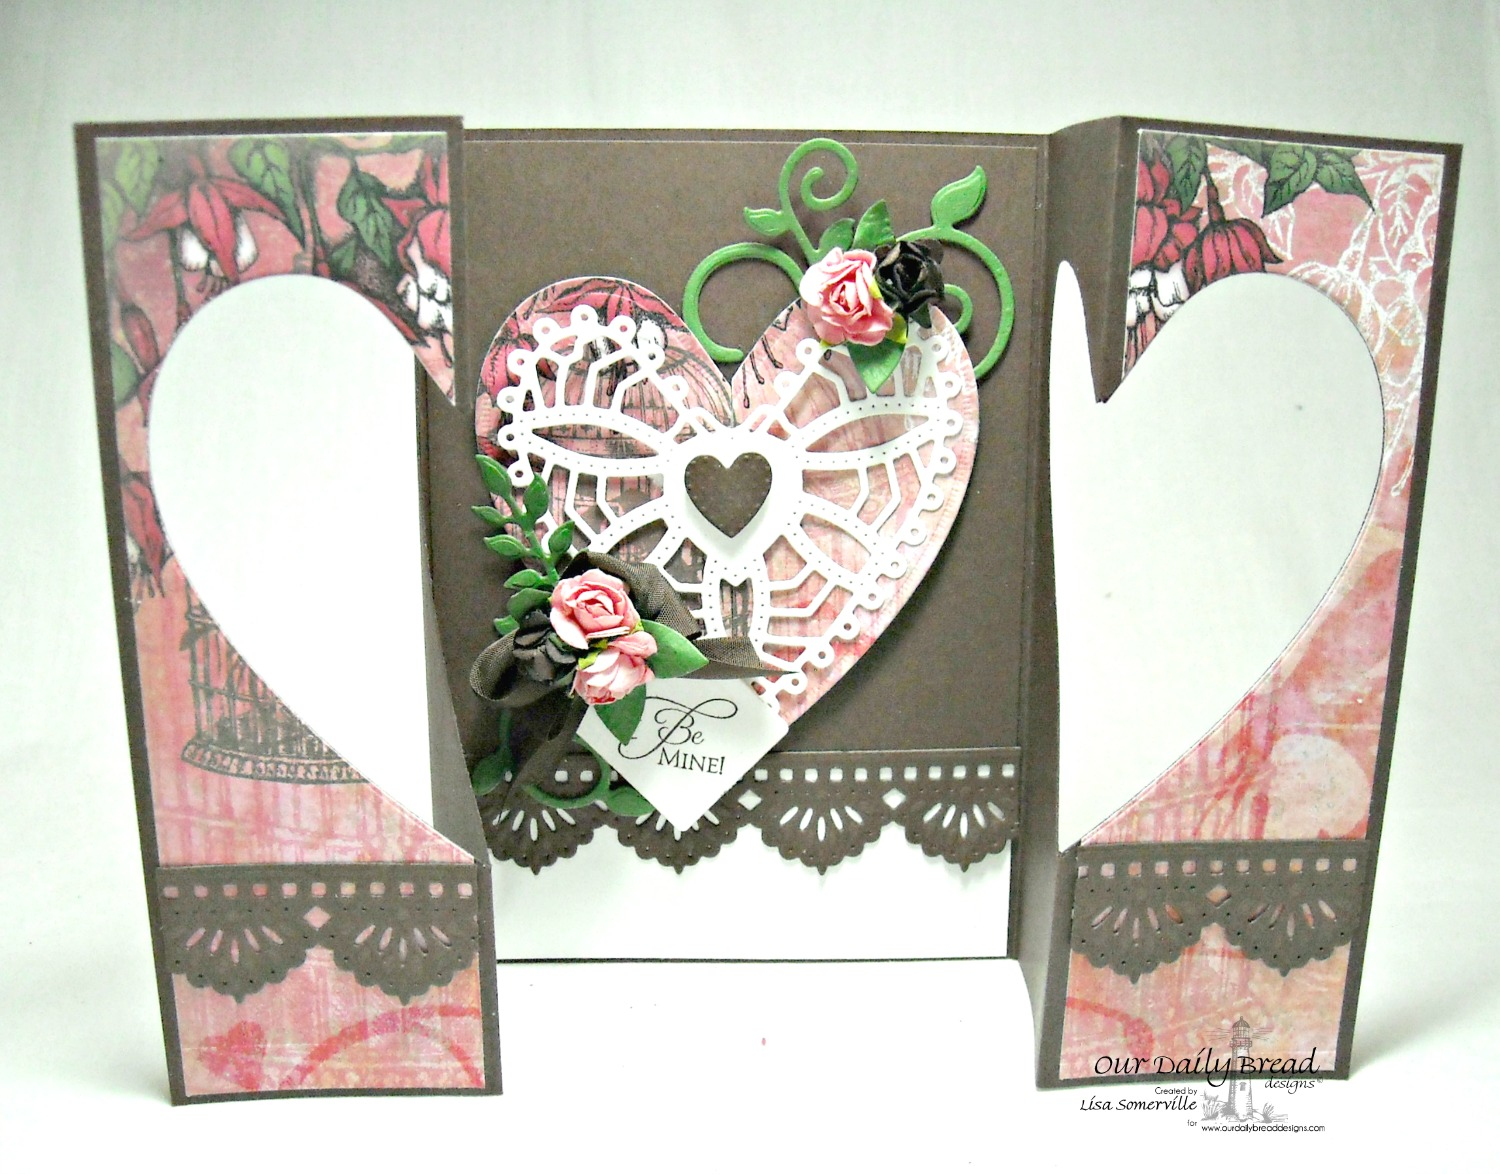 Stamps - Our Daily Bread Designs Be Mine, ODBD Heart and Soul Paper Collection, ODBD Custom Fancy Foliage Dies, ODBD Custom Ornate Hearts Die, ODBD Beautiful Borders Dies